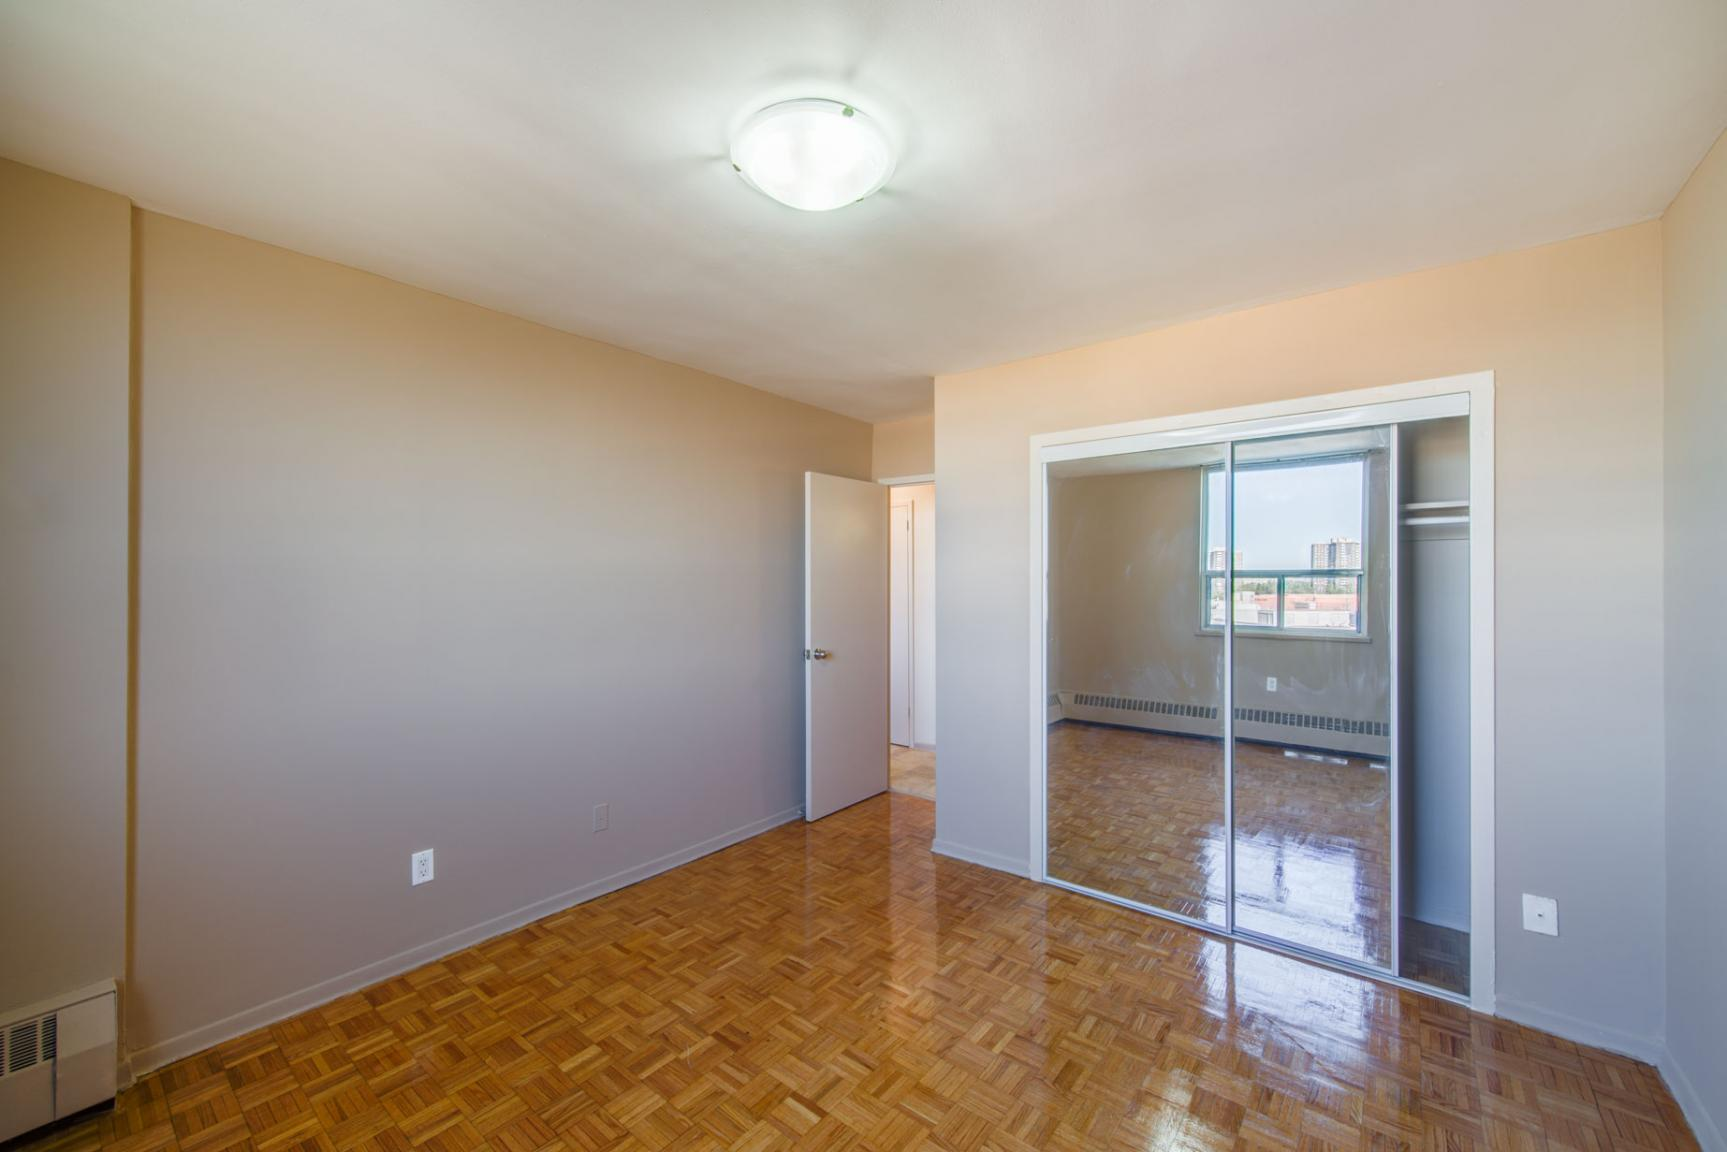 1 bedroom Apartments for rent in North-York at Hunters Lodge - Photo 43 - RentersPages – L400651